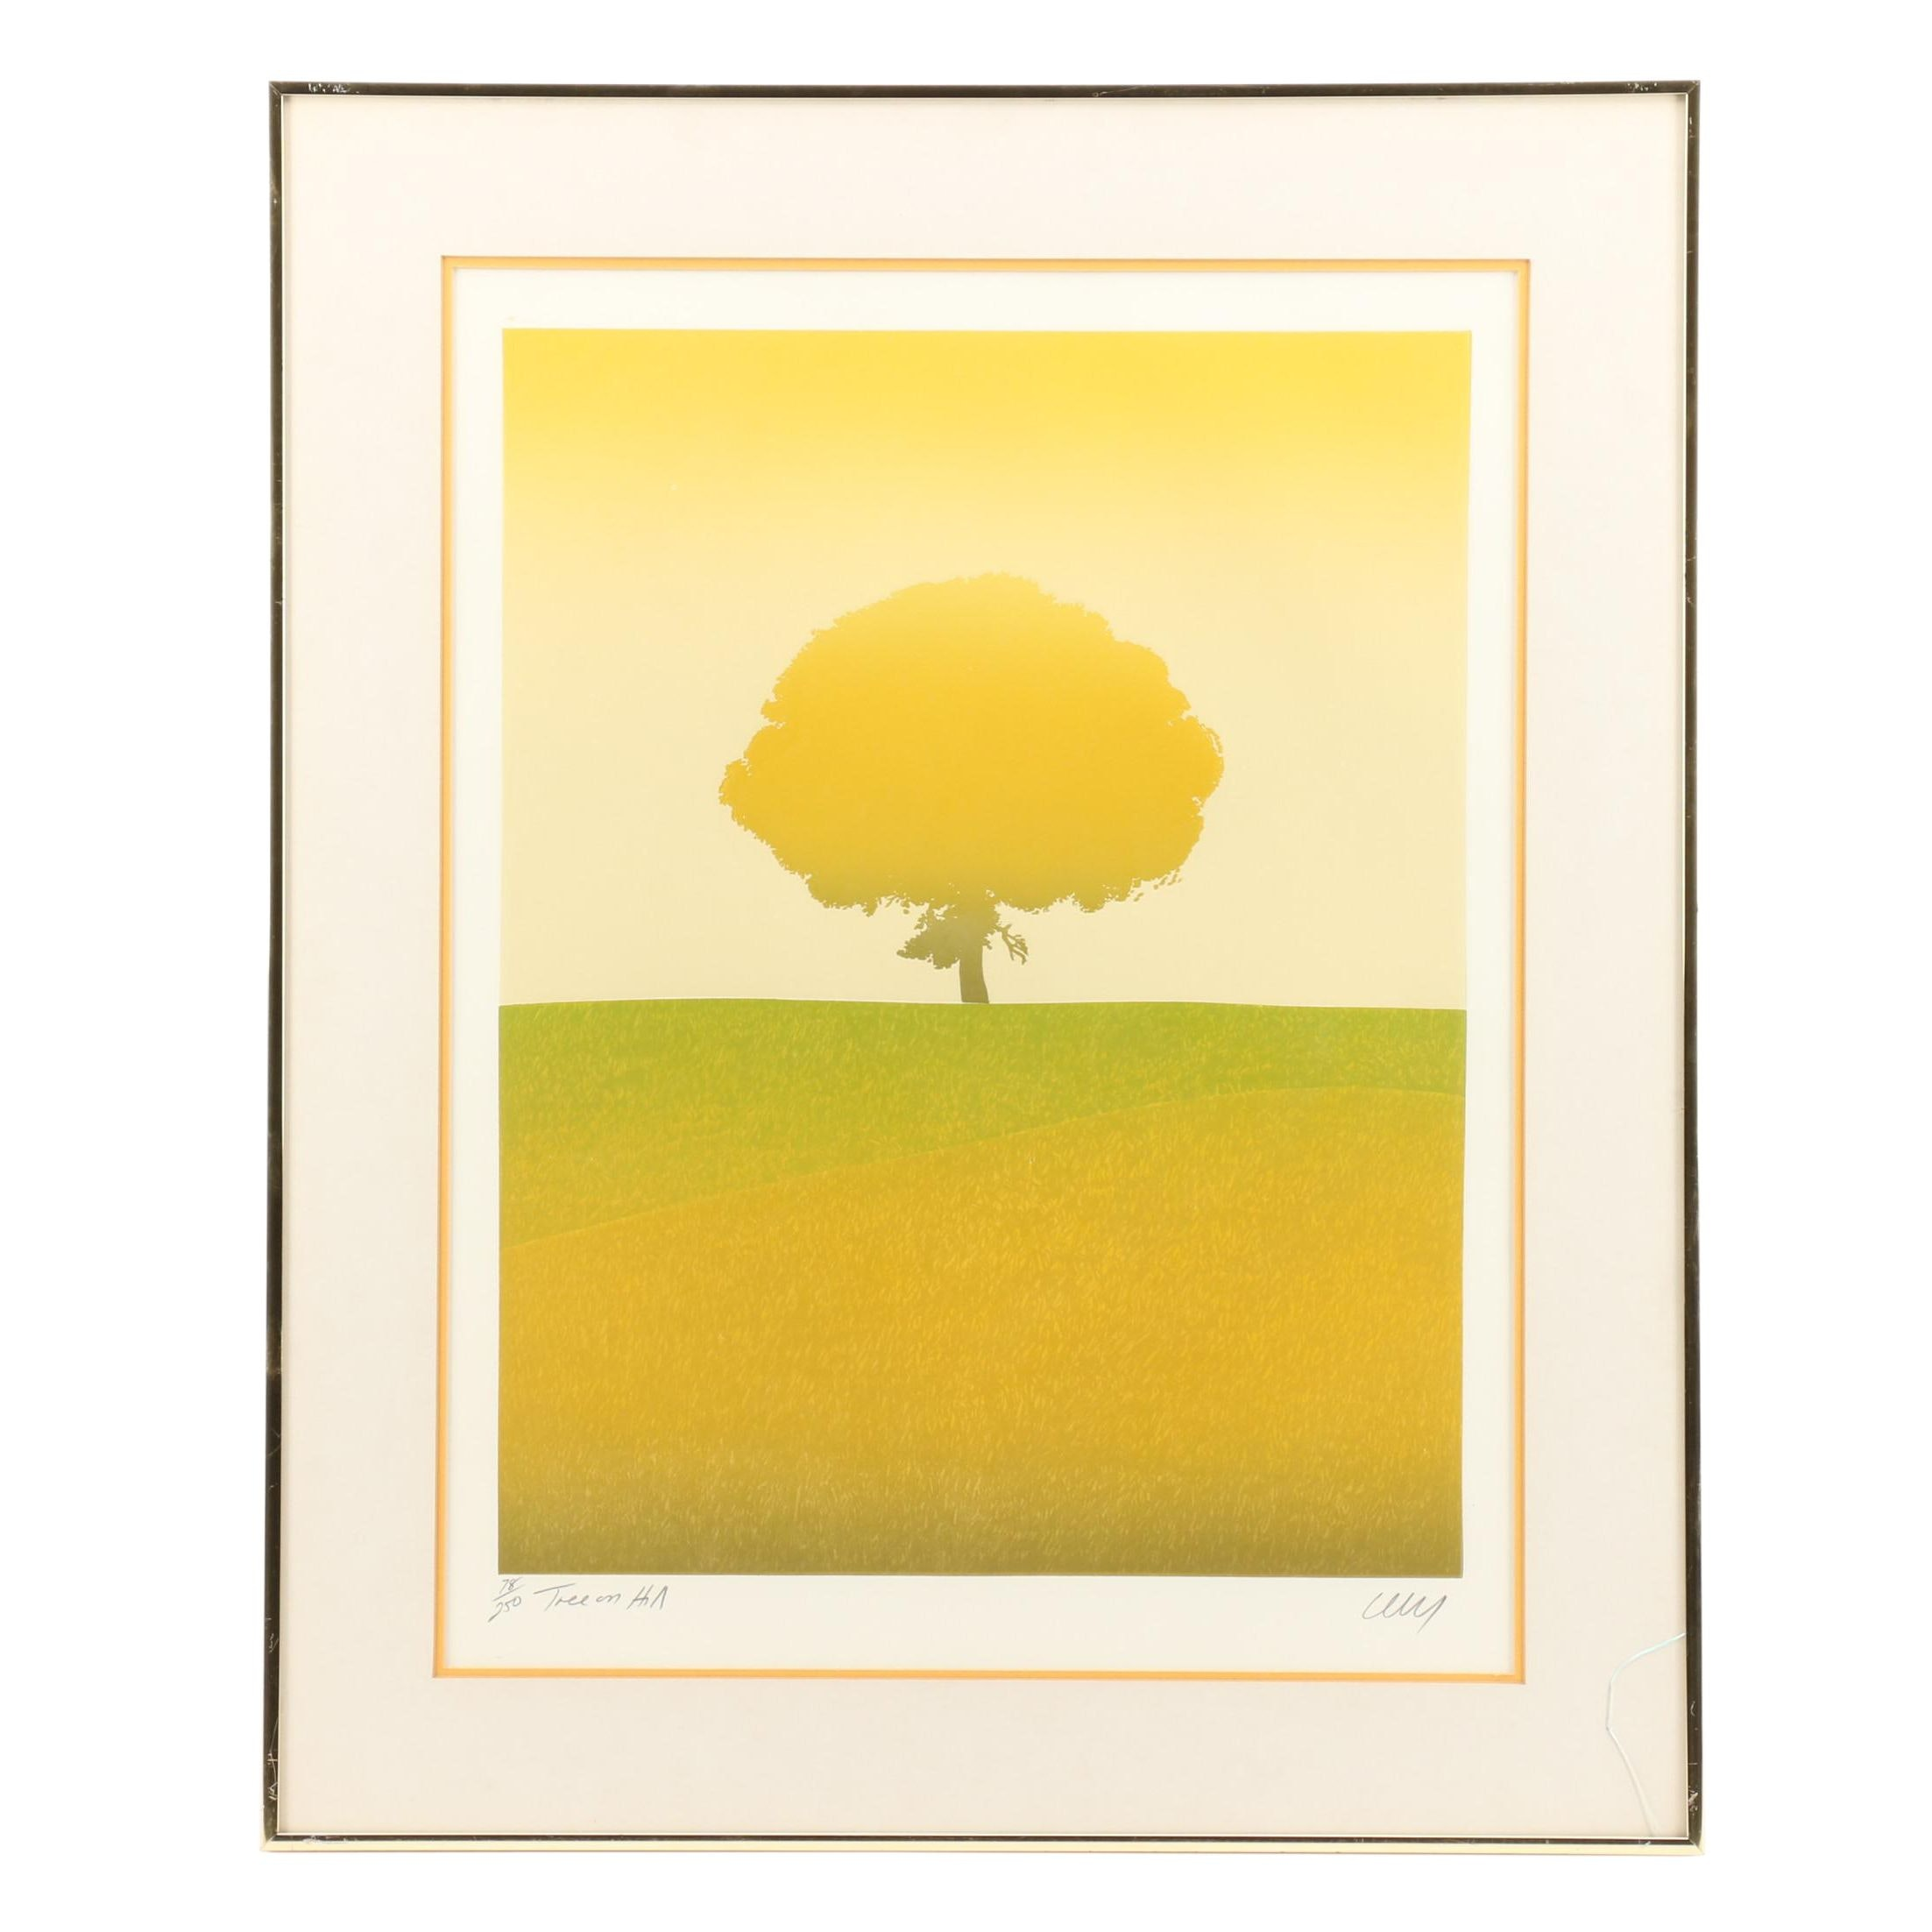 """Cecy Limited Edition Aquatint Etching """"Tree on Hill"""""""